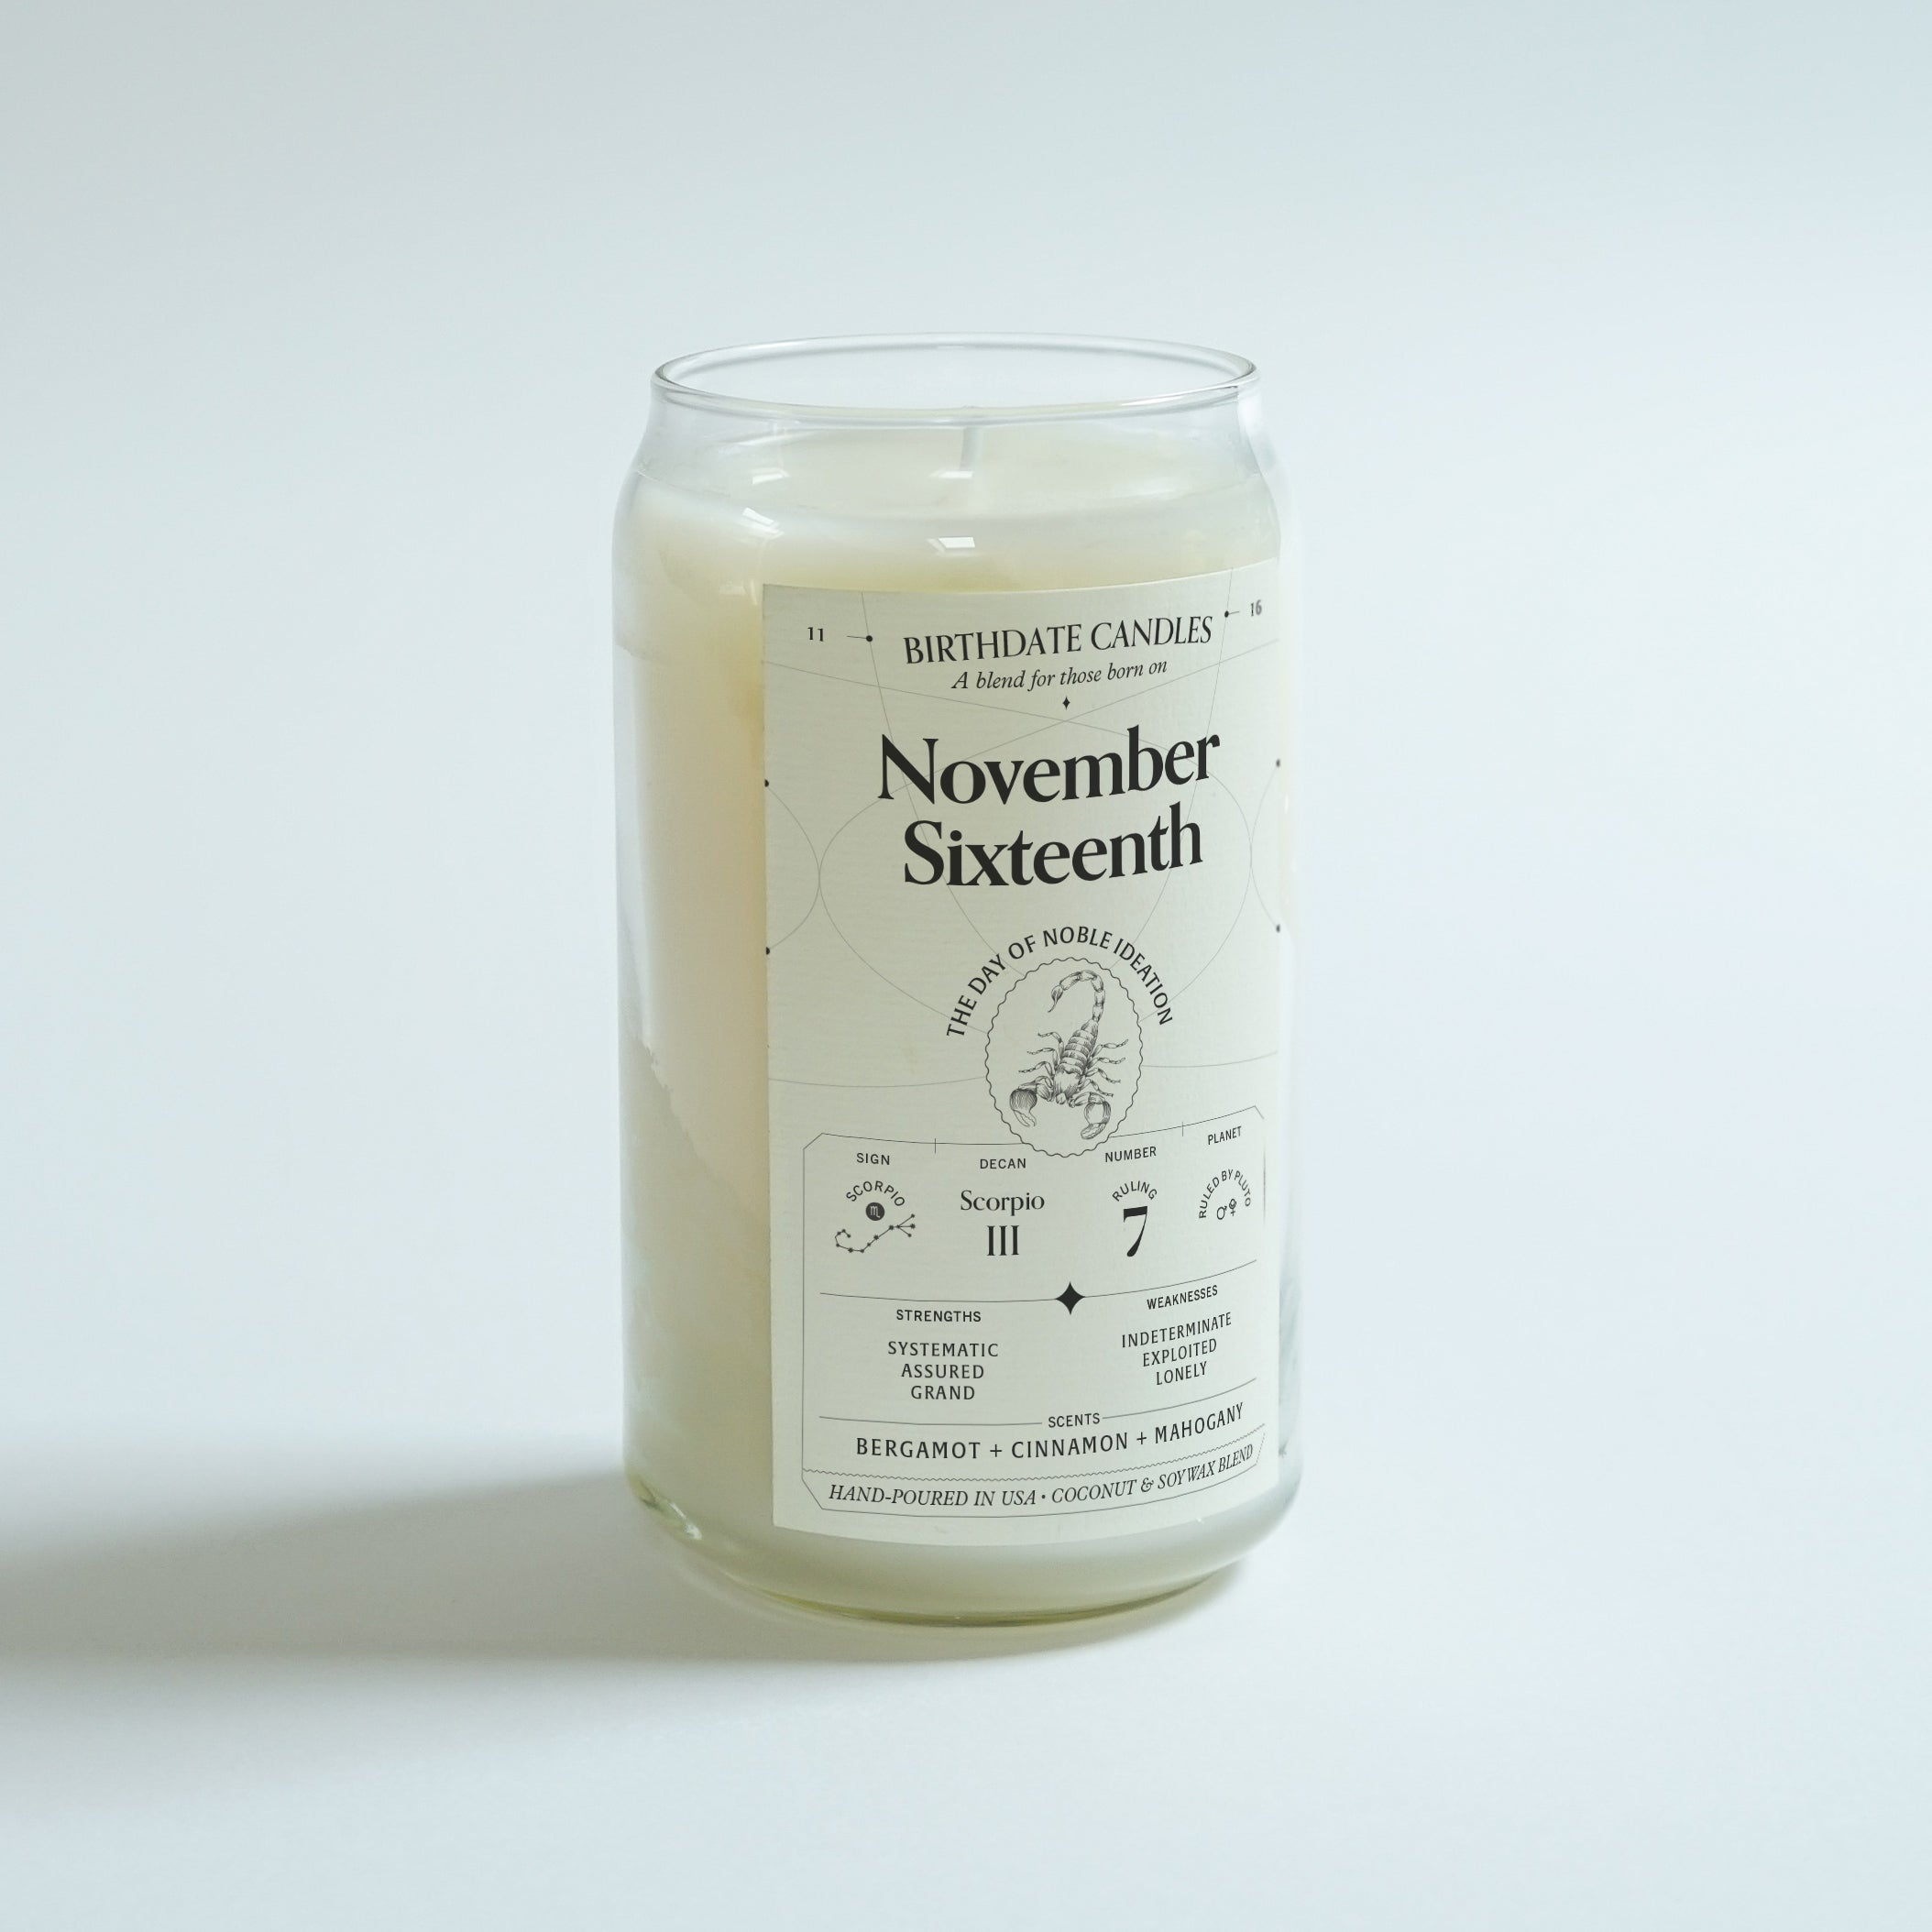 The November Sixteenth Candle